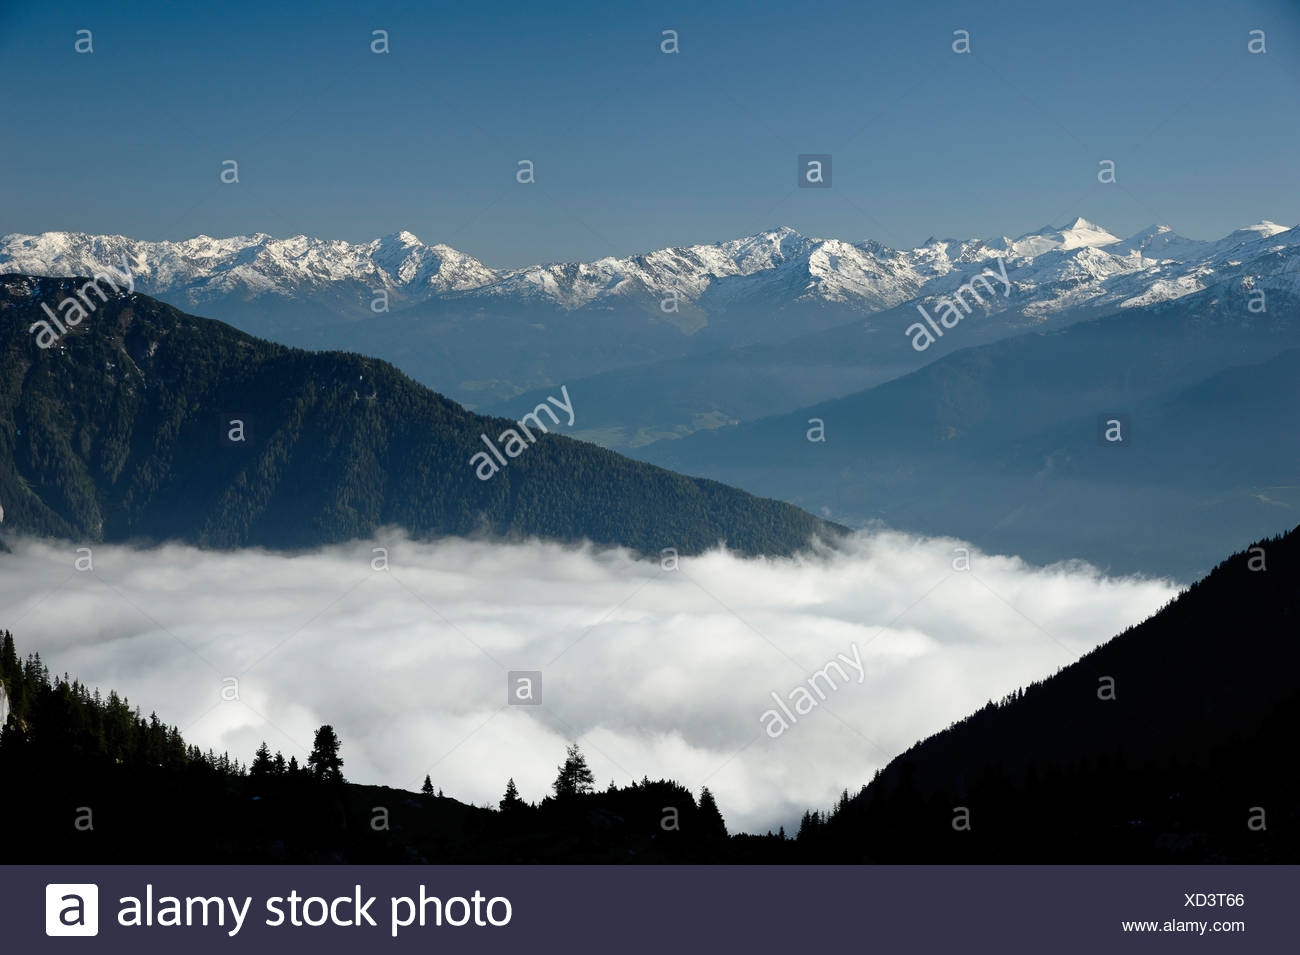 View from Erfurt alpine hut in the Rofan mountains onto the Karwendel mountains, Austria, Europe - Stock Image